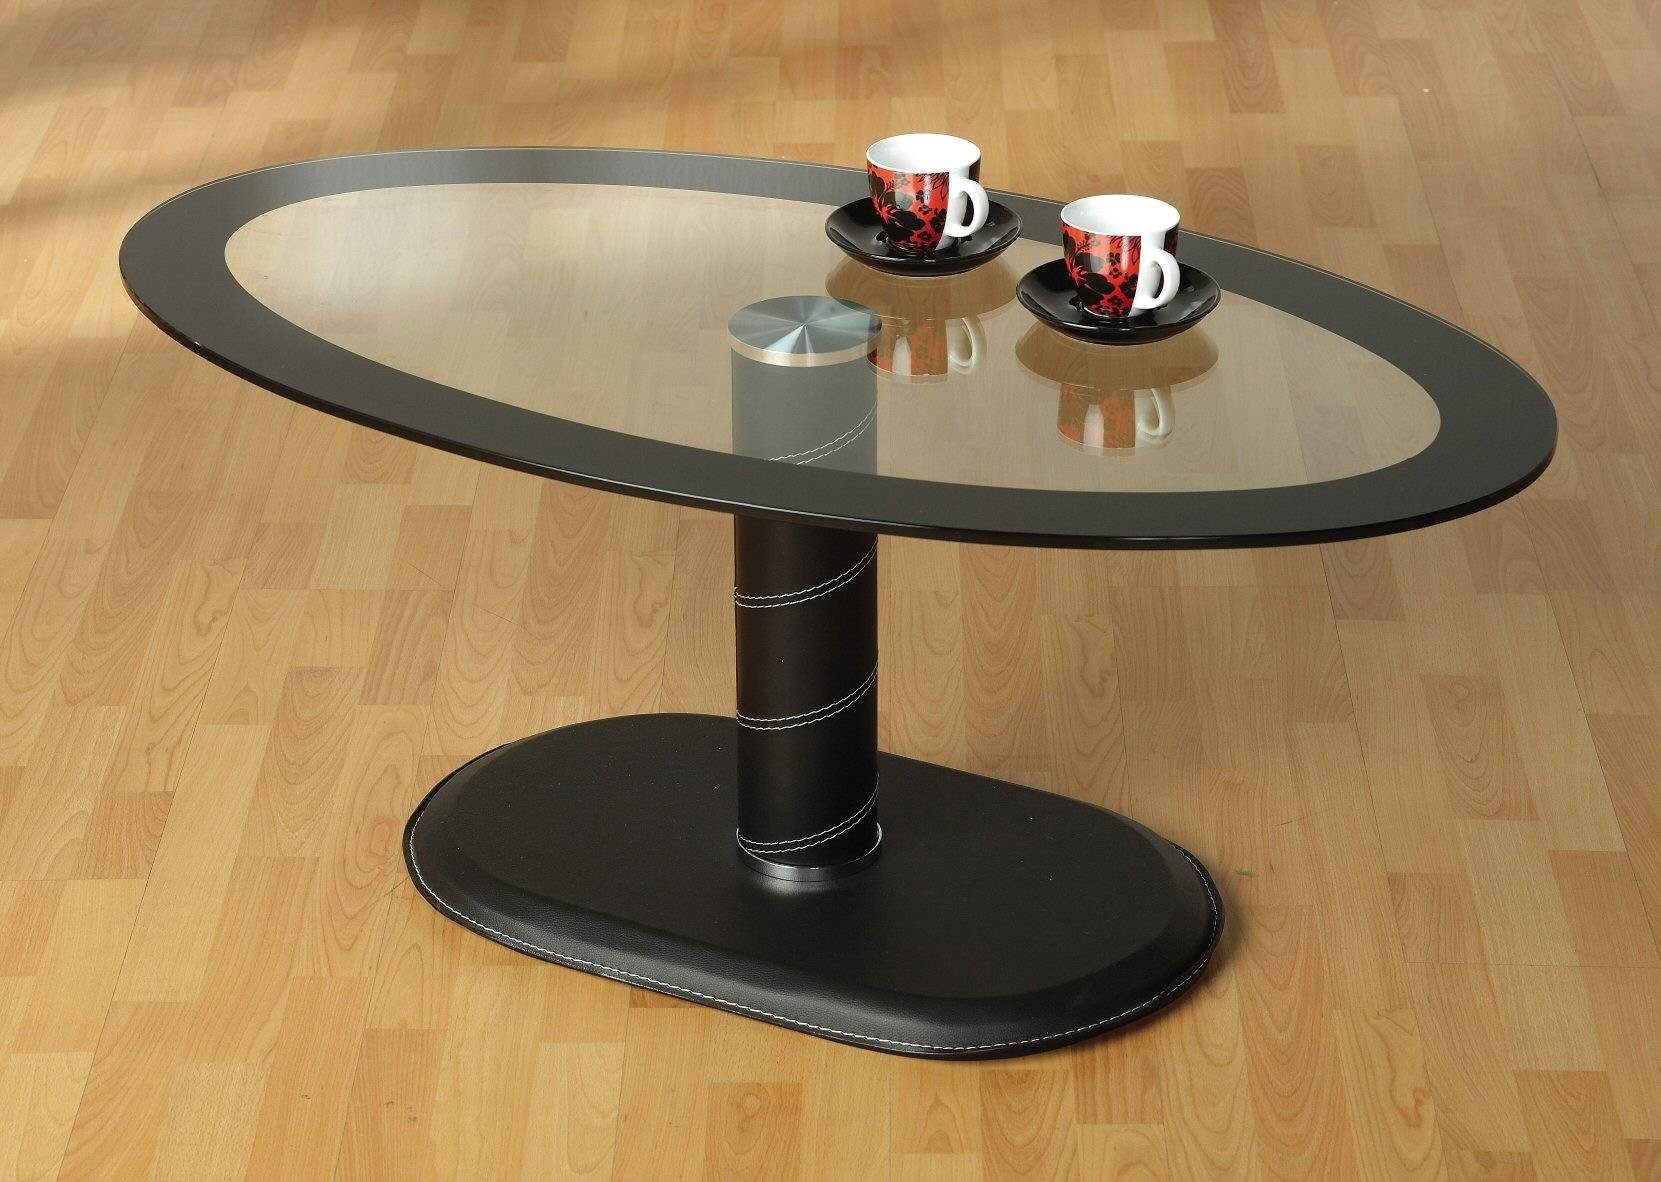 Furniture: Small Oval Coffee Table | Target Living Room Tables within Oval Gloss Coffee Tables (Image 16 of 30)